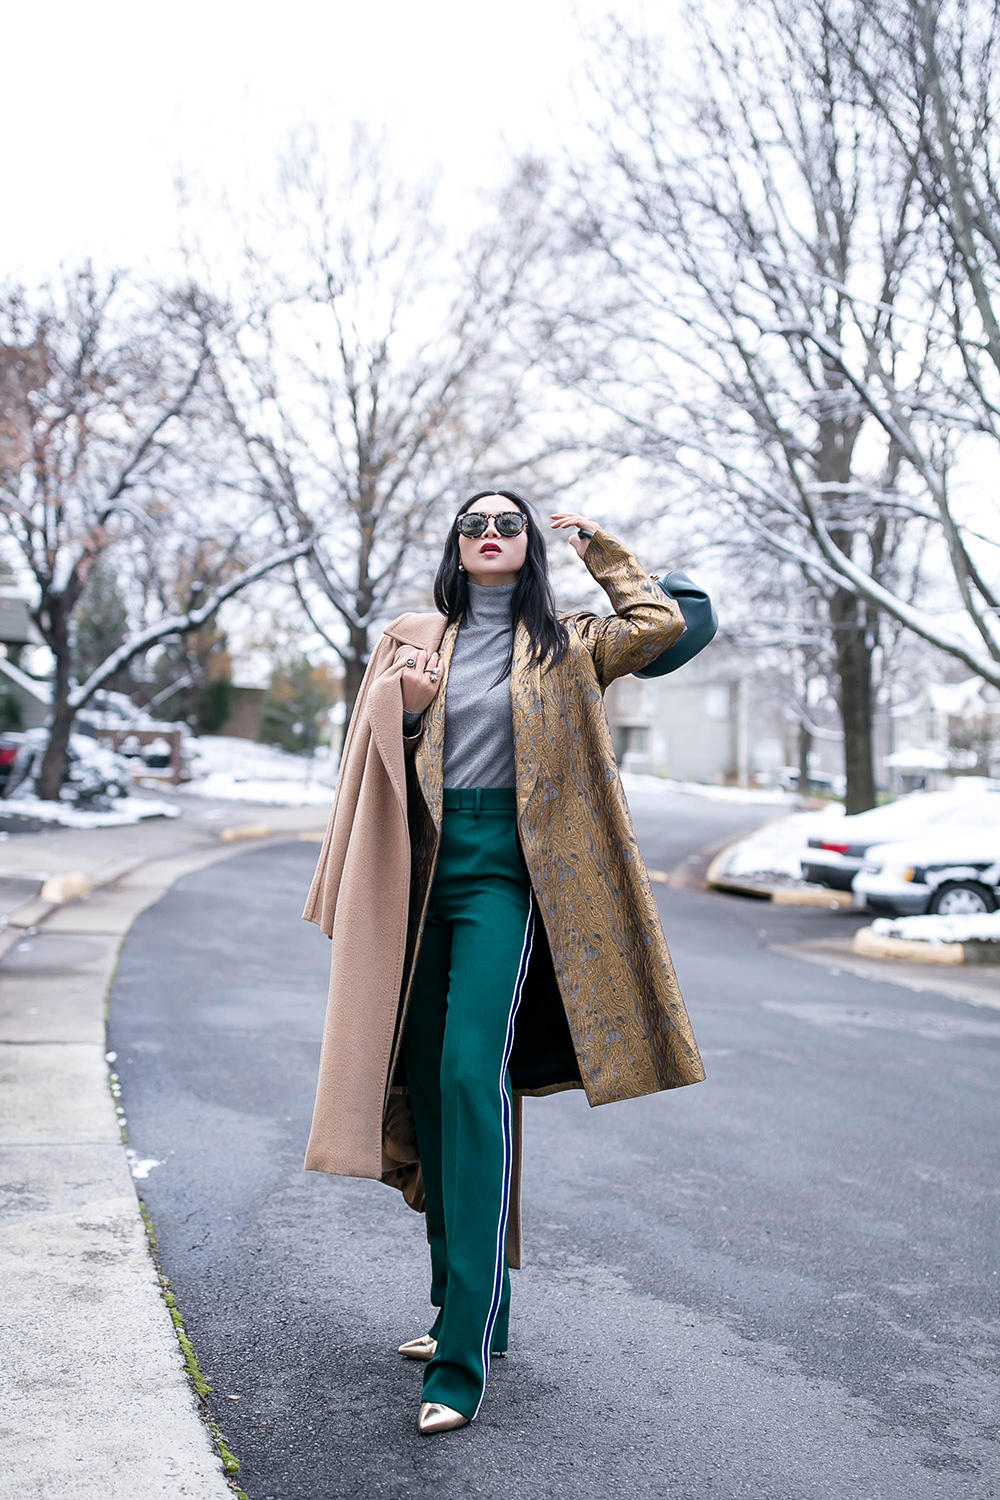 gold-and-green-winter-look-petiteflowerpresents.jpg